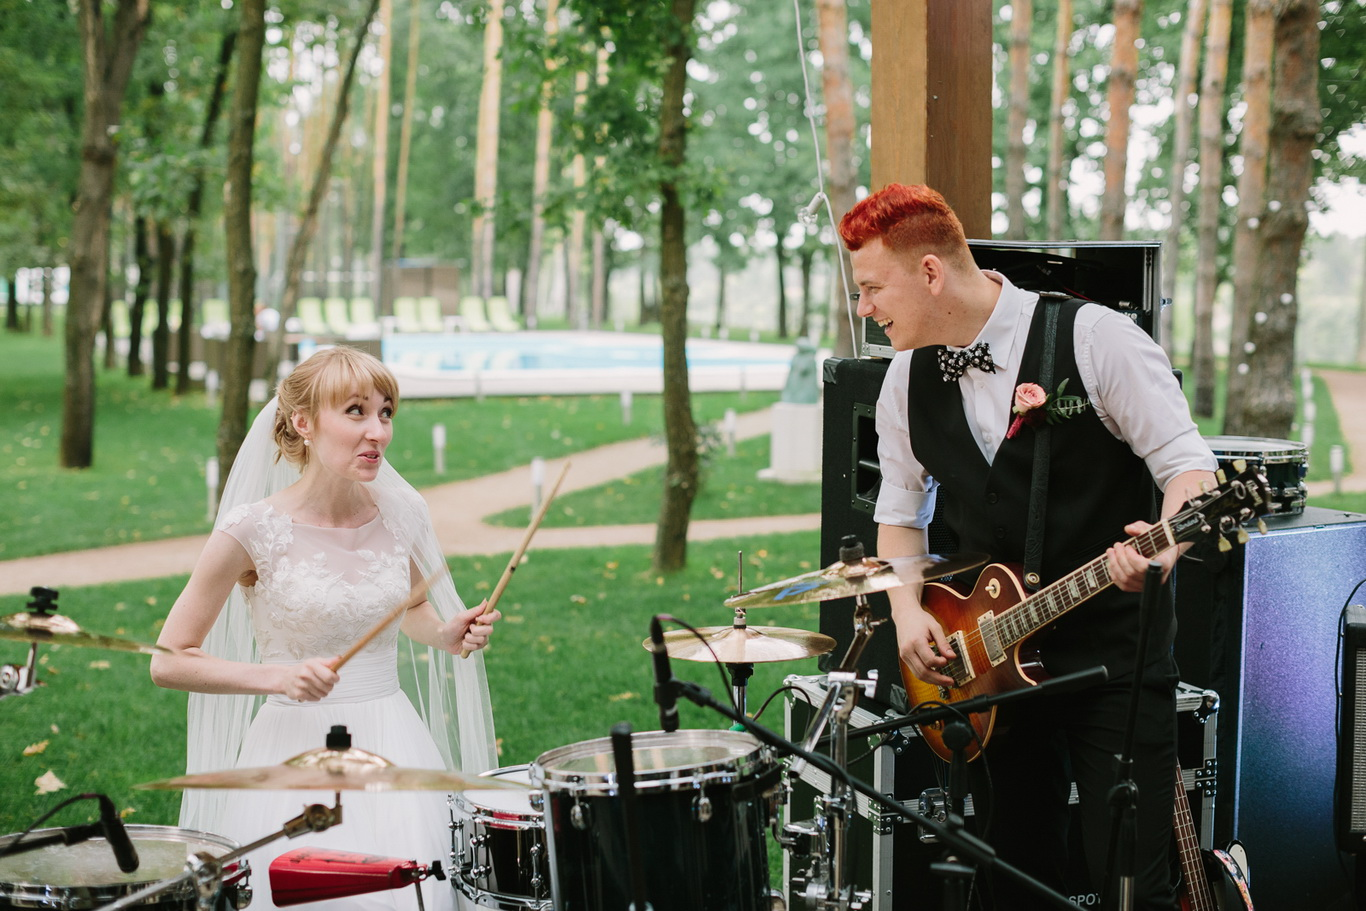 Nastya-Oleg-Music-Wedding-20